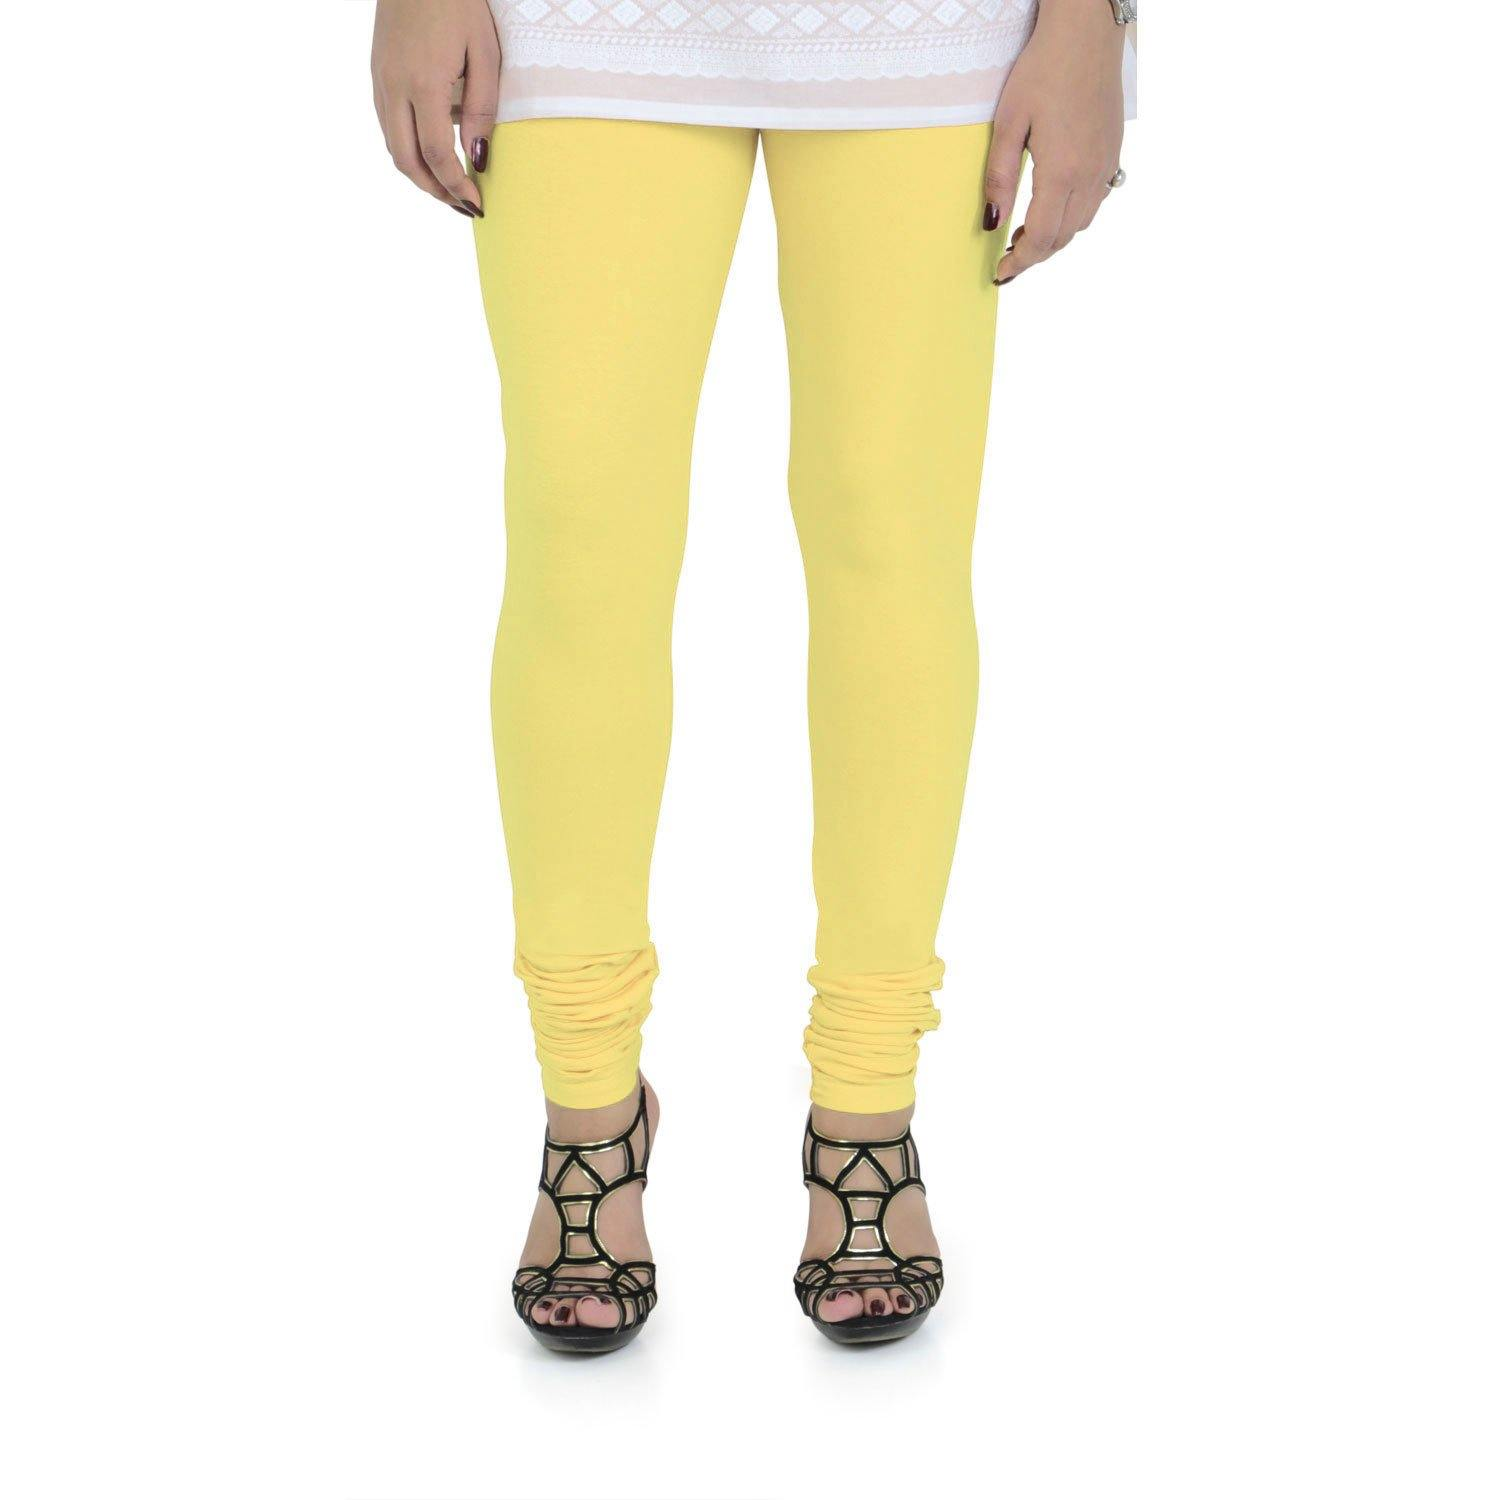 Vami Women's Cotton Stretchable Churidar Legging - Butter Cup - Bonjour Group